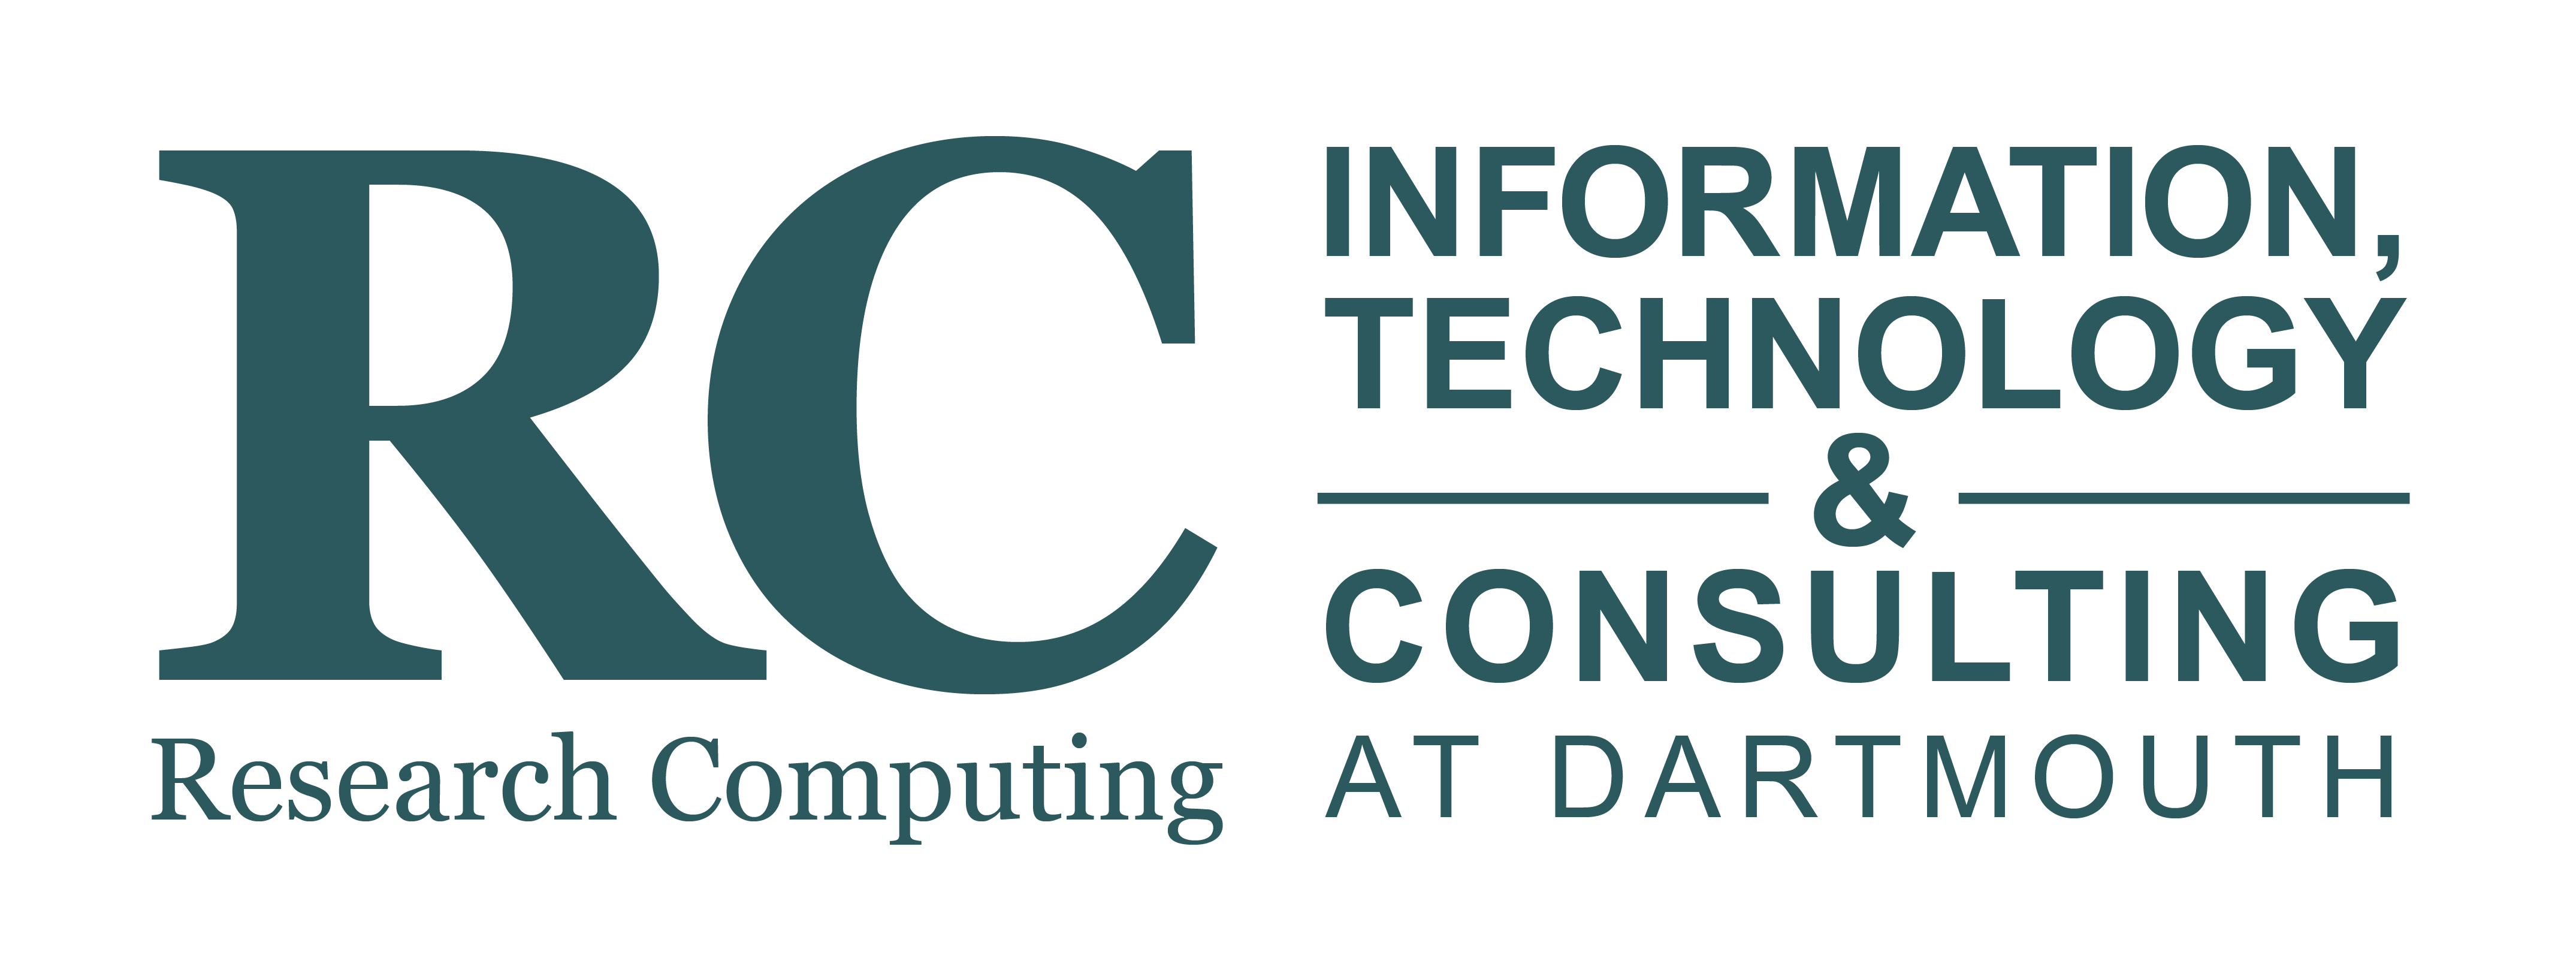 Dartmouth Research Computing